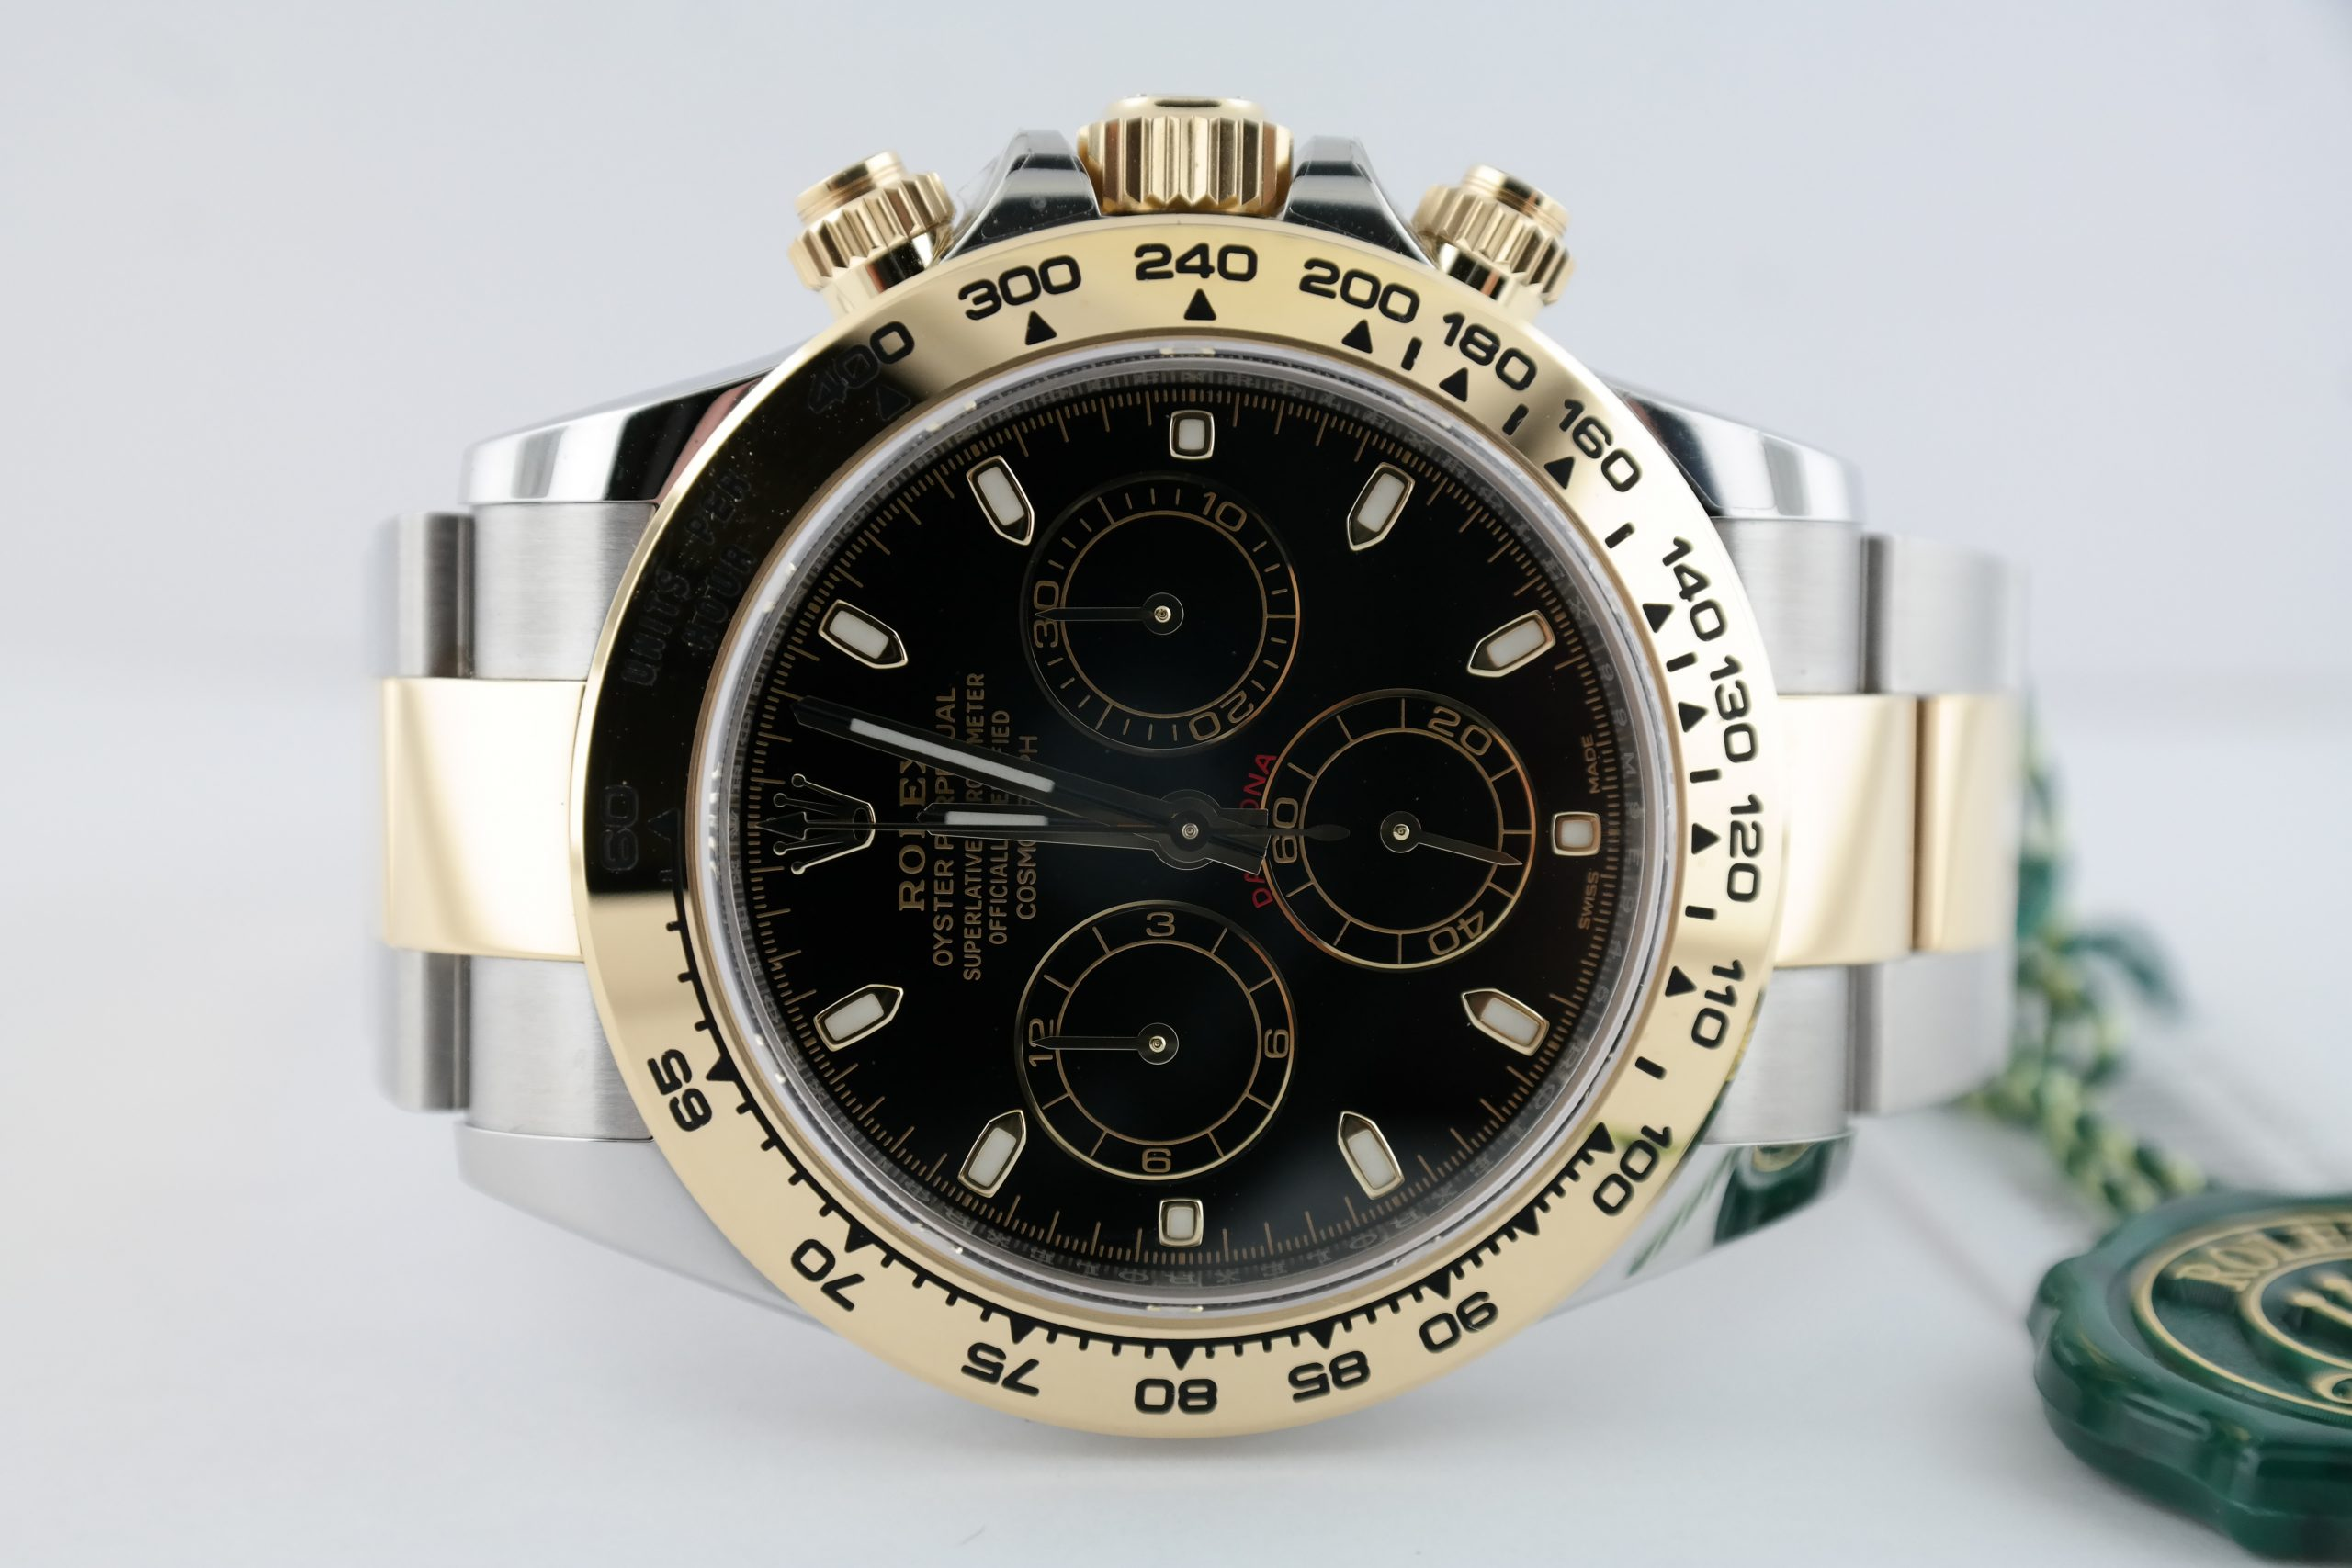 Men's Rolex Daytona 116503 Two-Tone Black Dial Oyster Band Box & Papers 2020